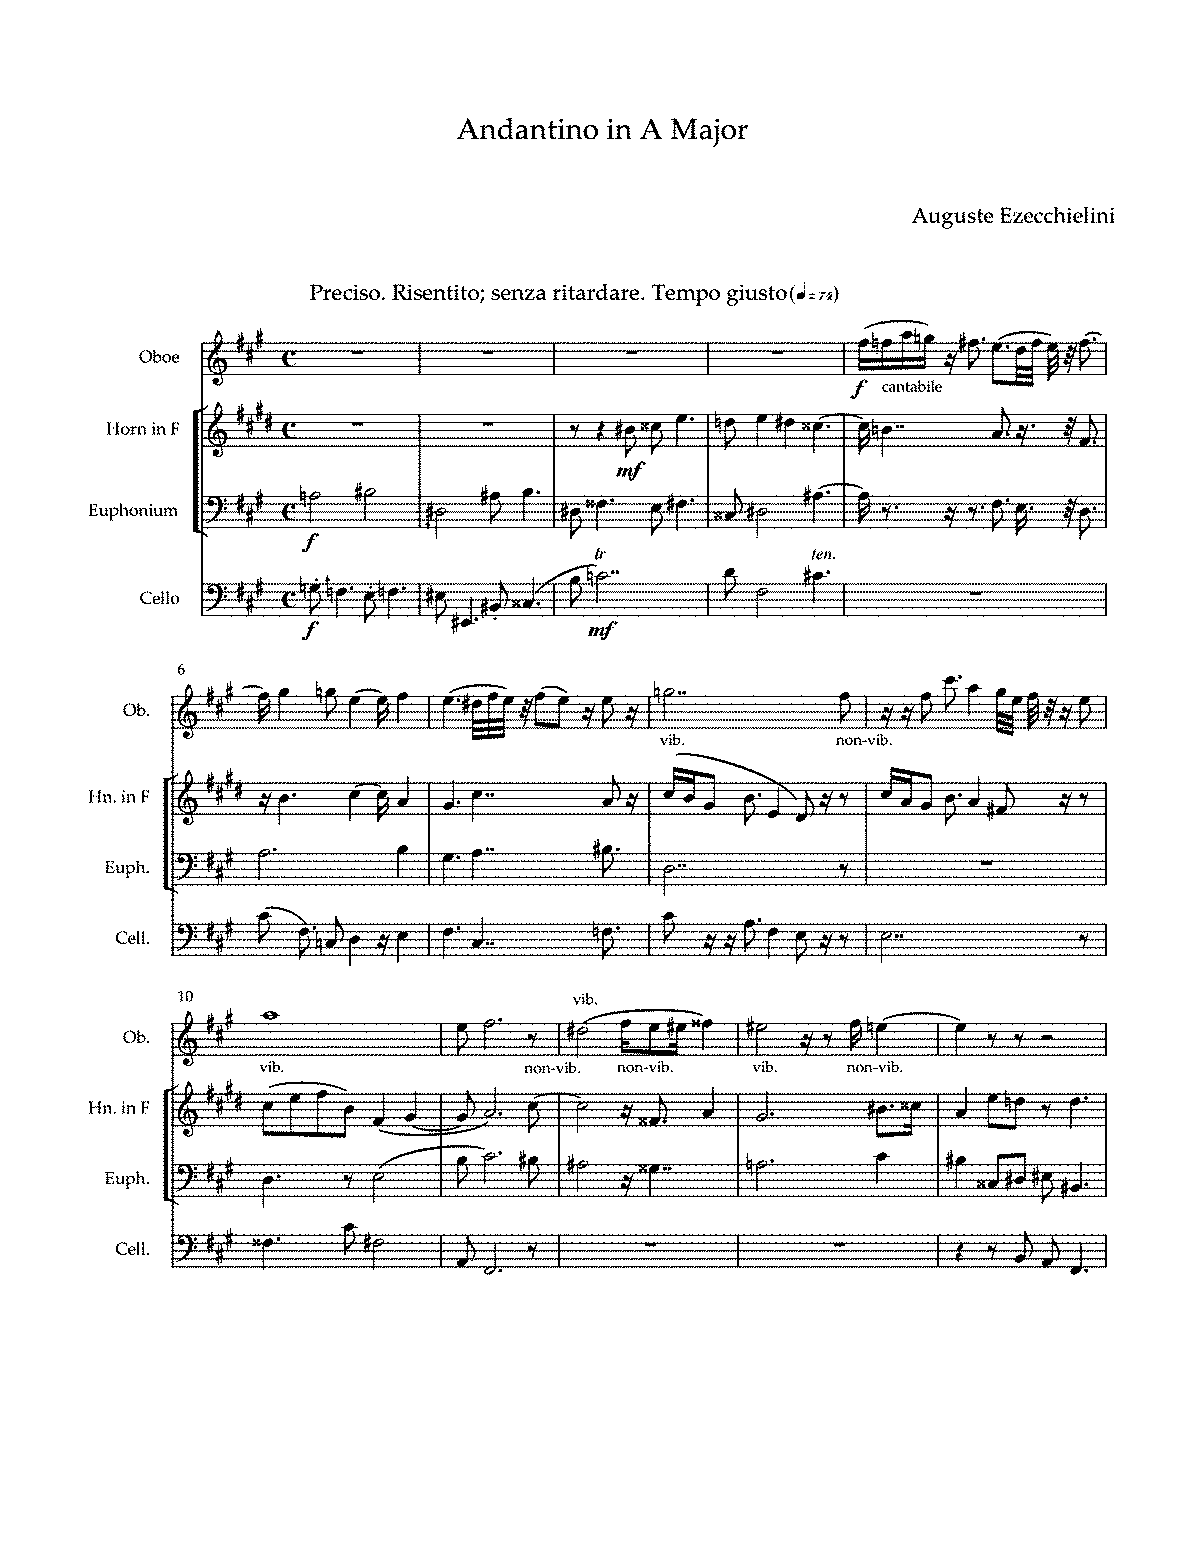 PMLP306446-Andantino in A Major by Auguste Ezecchielini.pdf